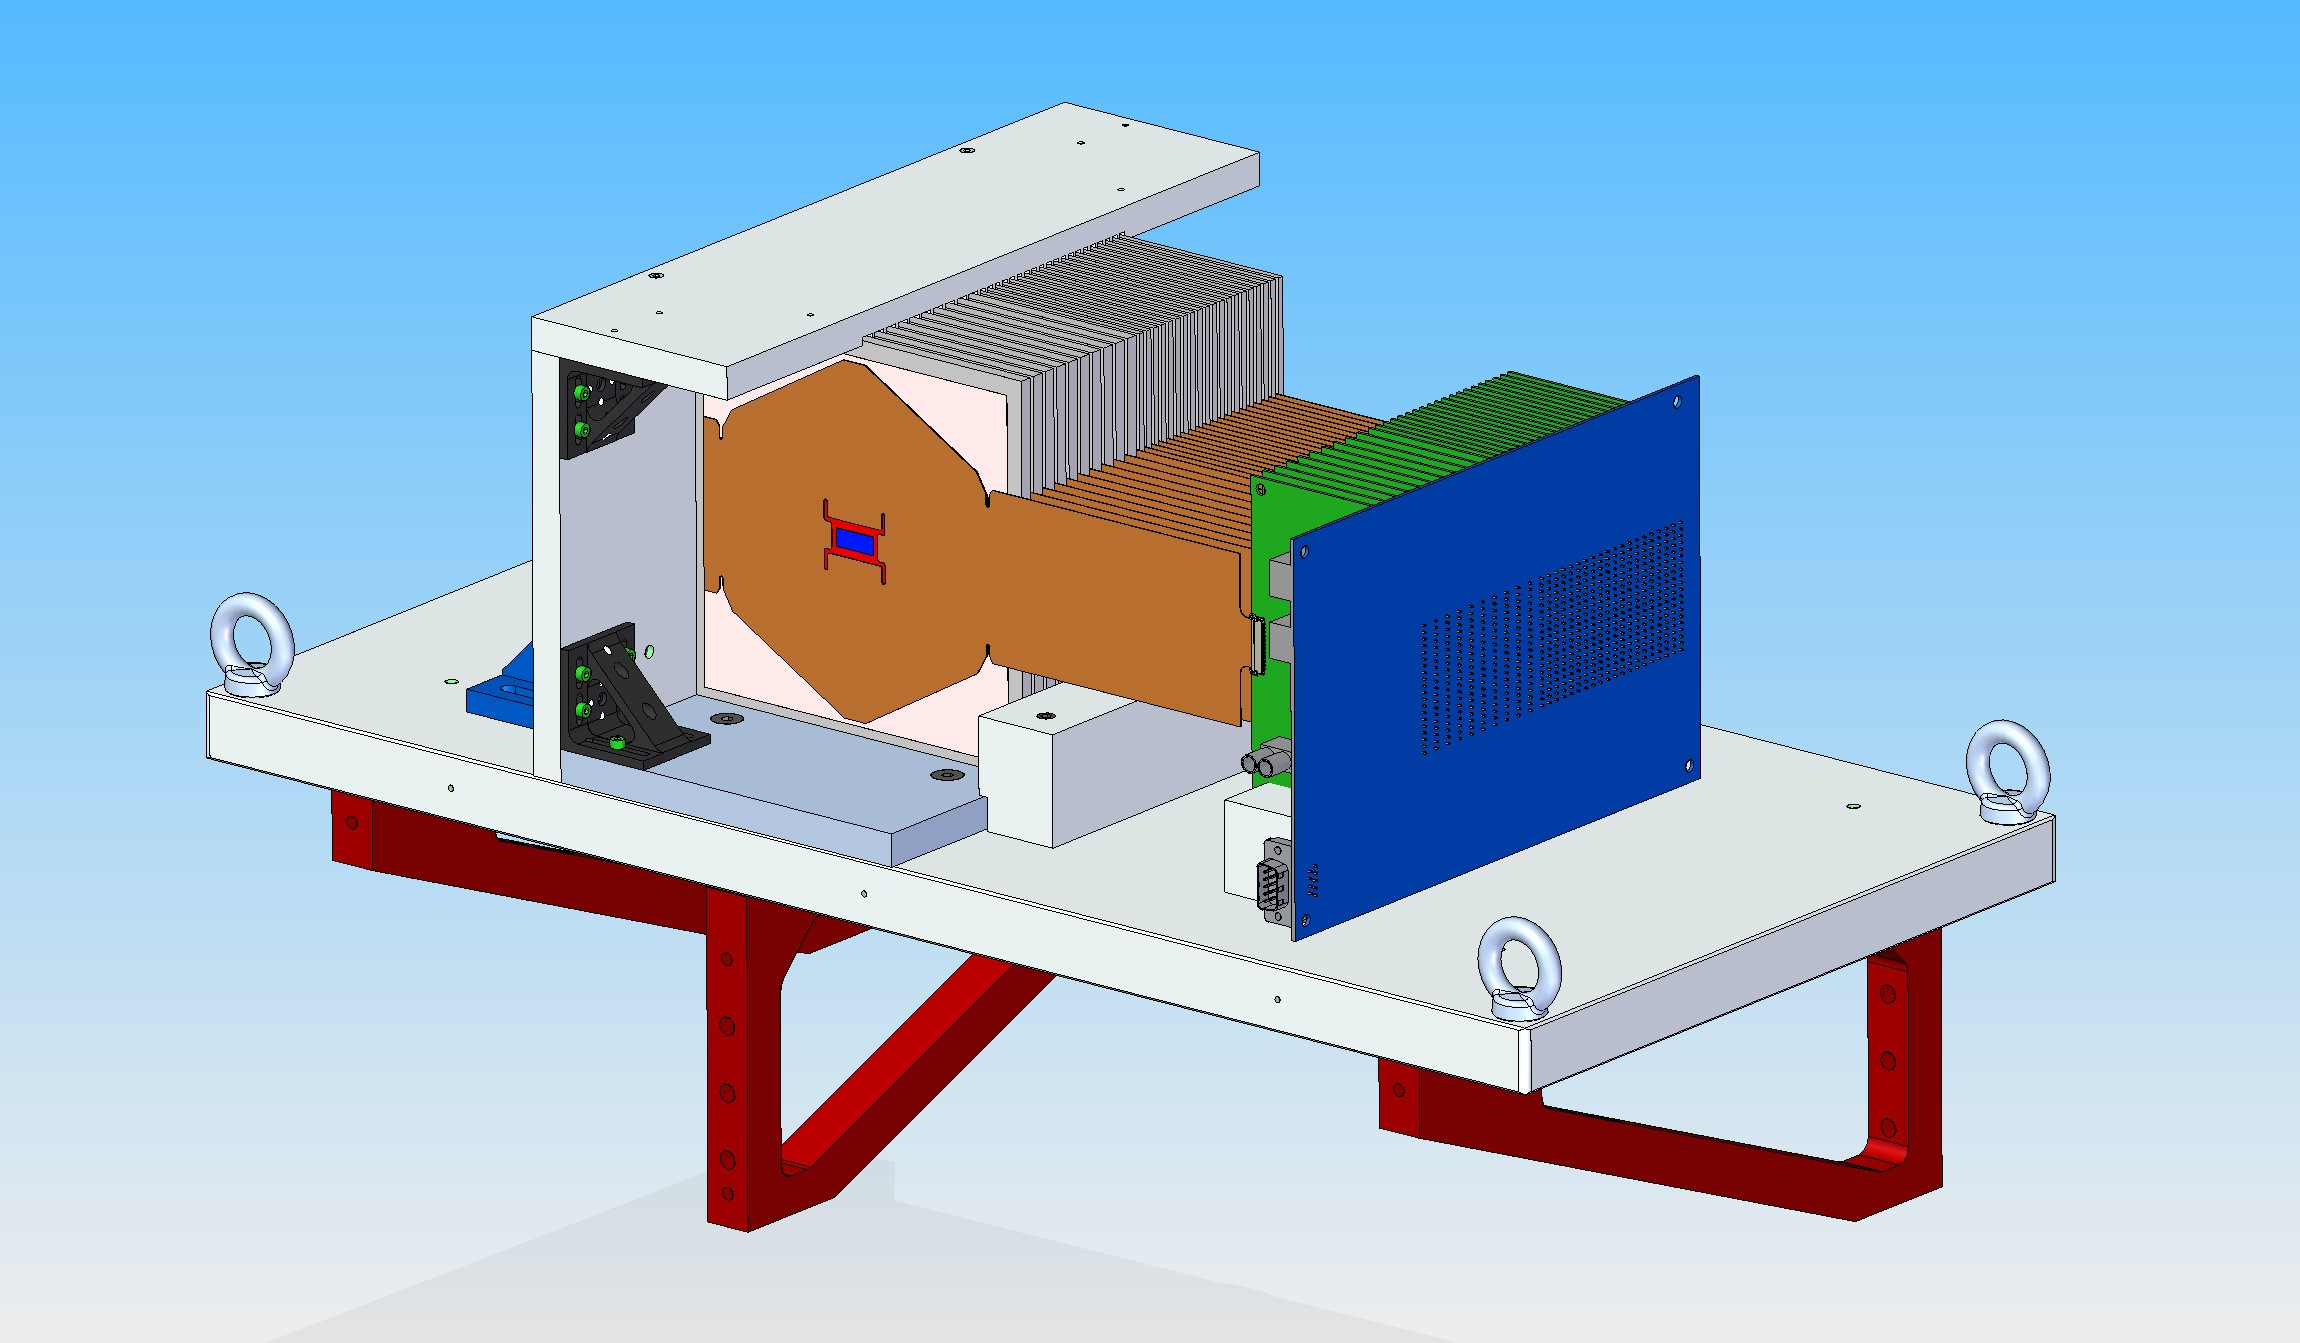 Engineering drawing of the electromagnetic calorimeter at SLAC.  This drawing shows the full depth of the ECAL, but unlike the real calorimeter, it is only one sensor wide.  The sensor, though not visible in the drawing, is located underneath the hexagonal brown cable. Image courtesy of Marco Oriunno.